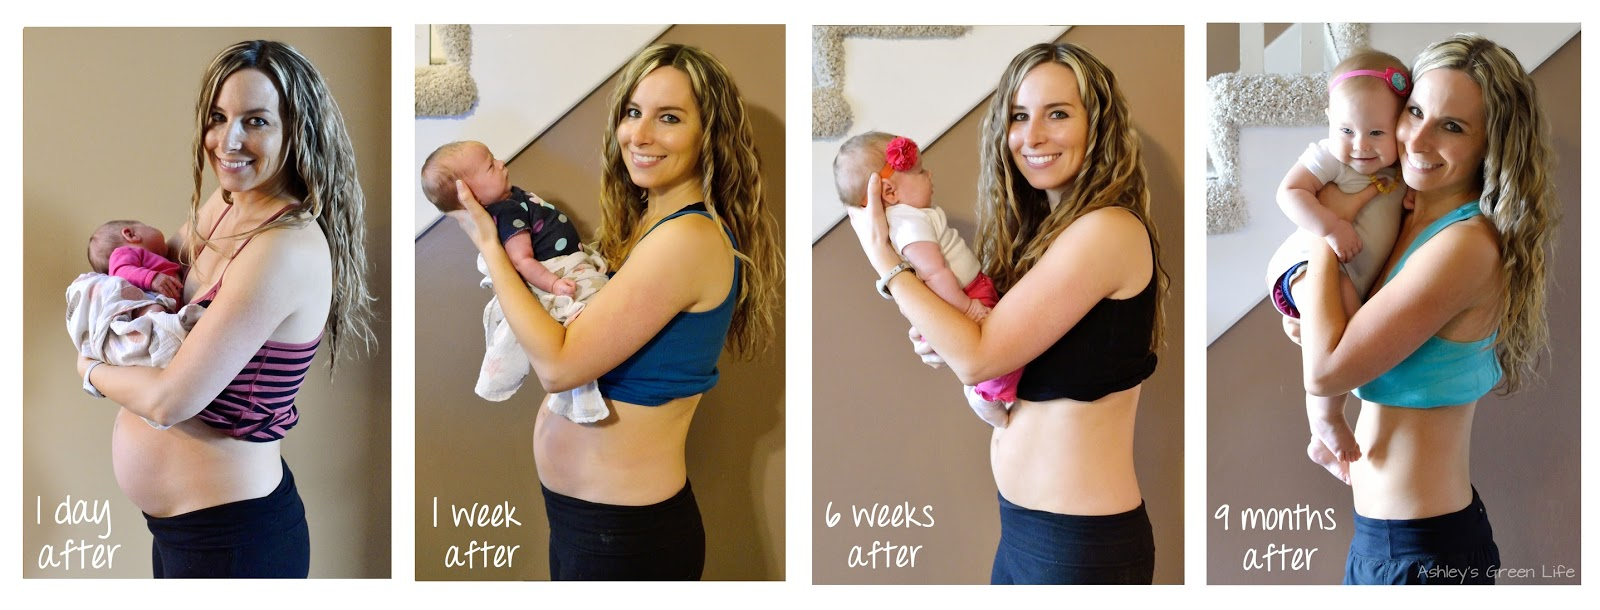 Ashley's Green Life: How I Got My Body Back After Baby